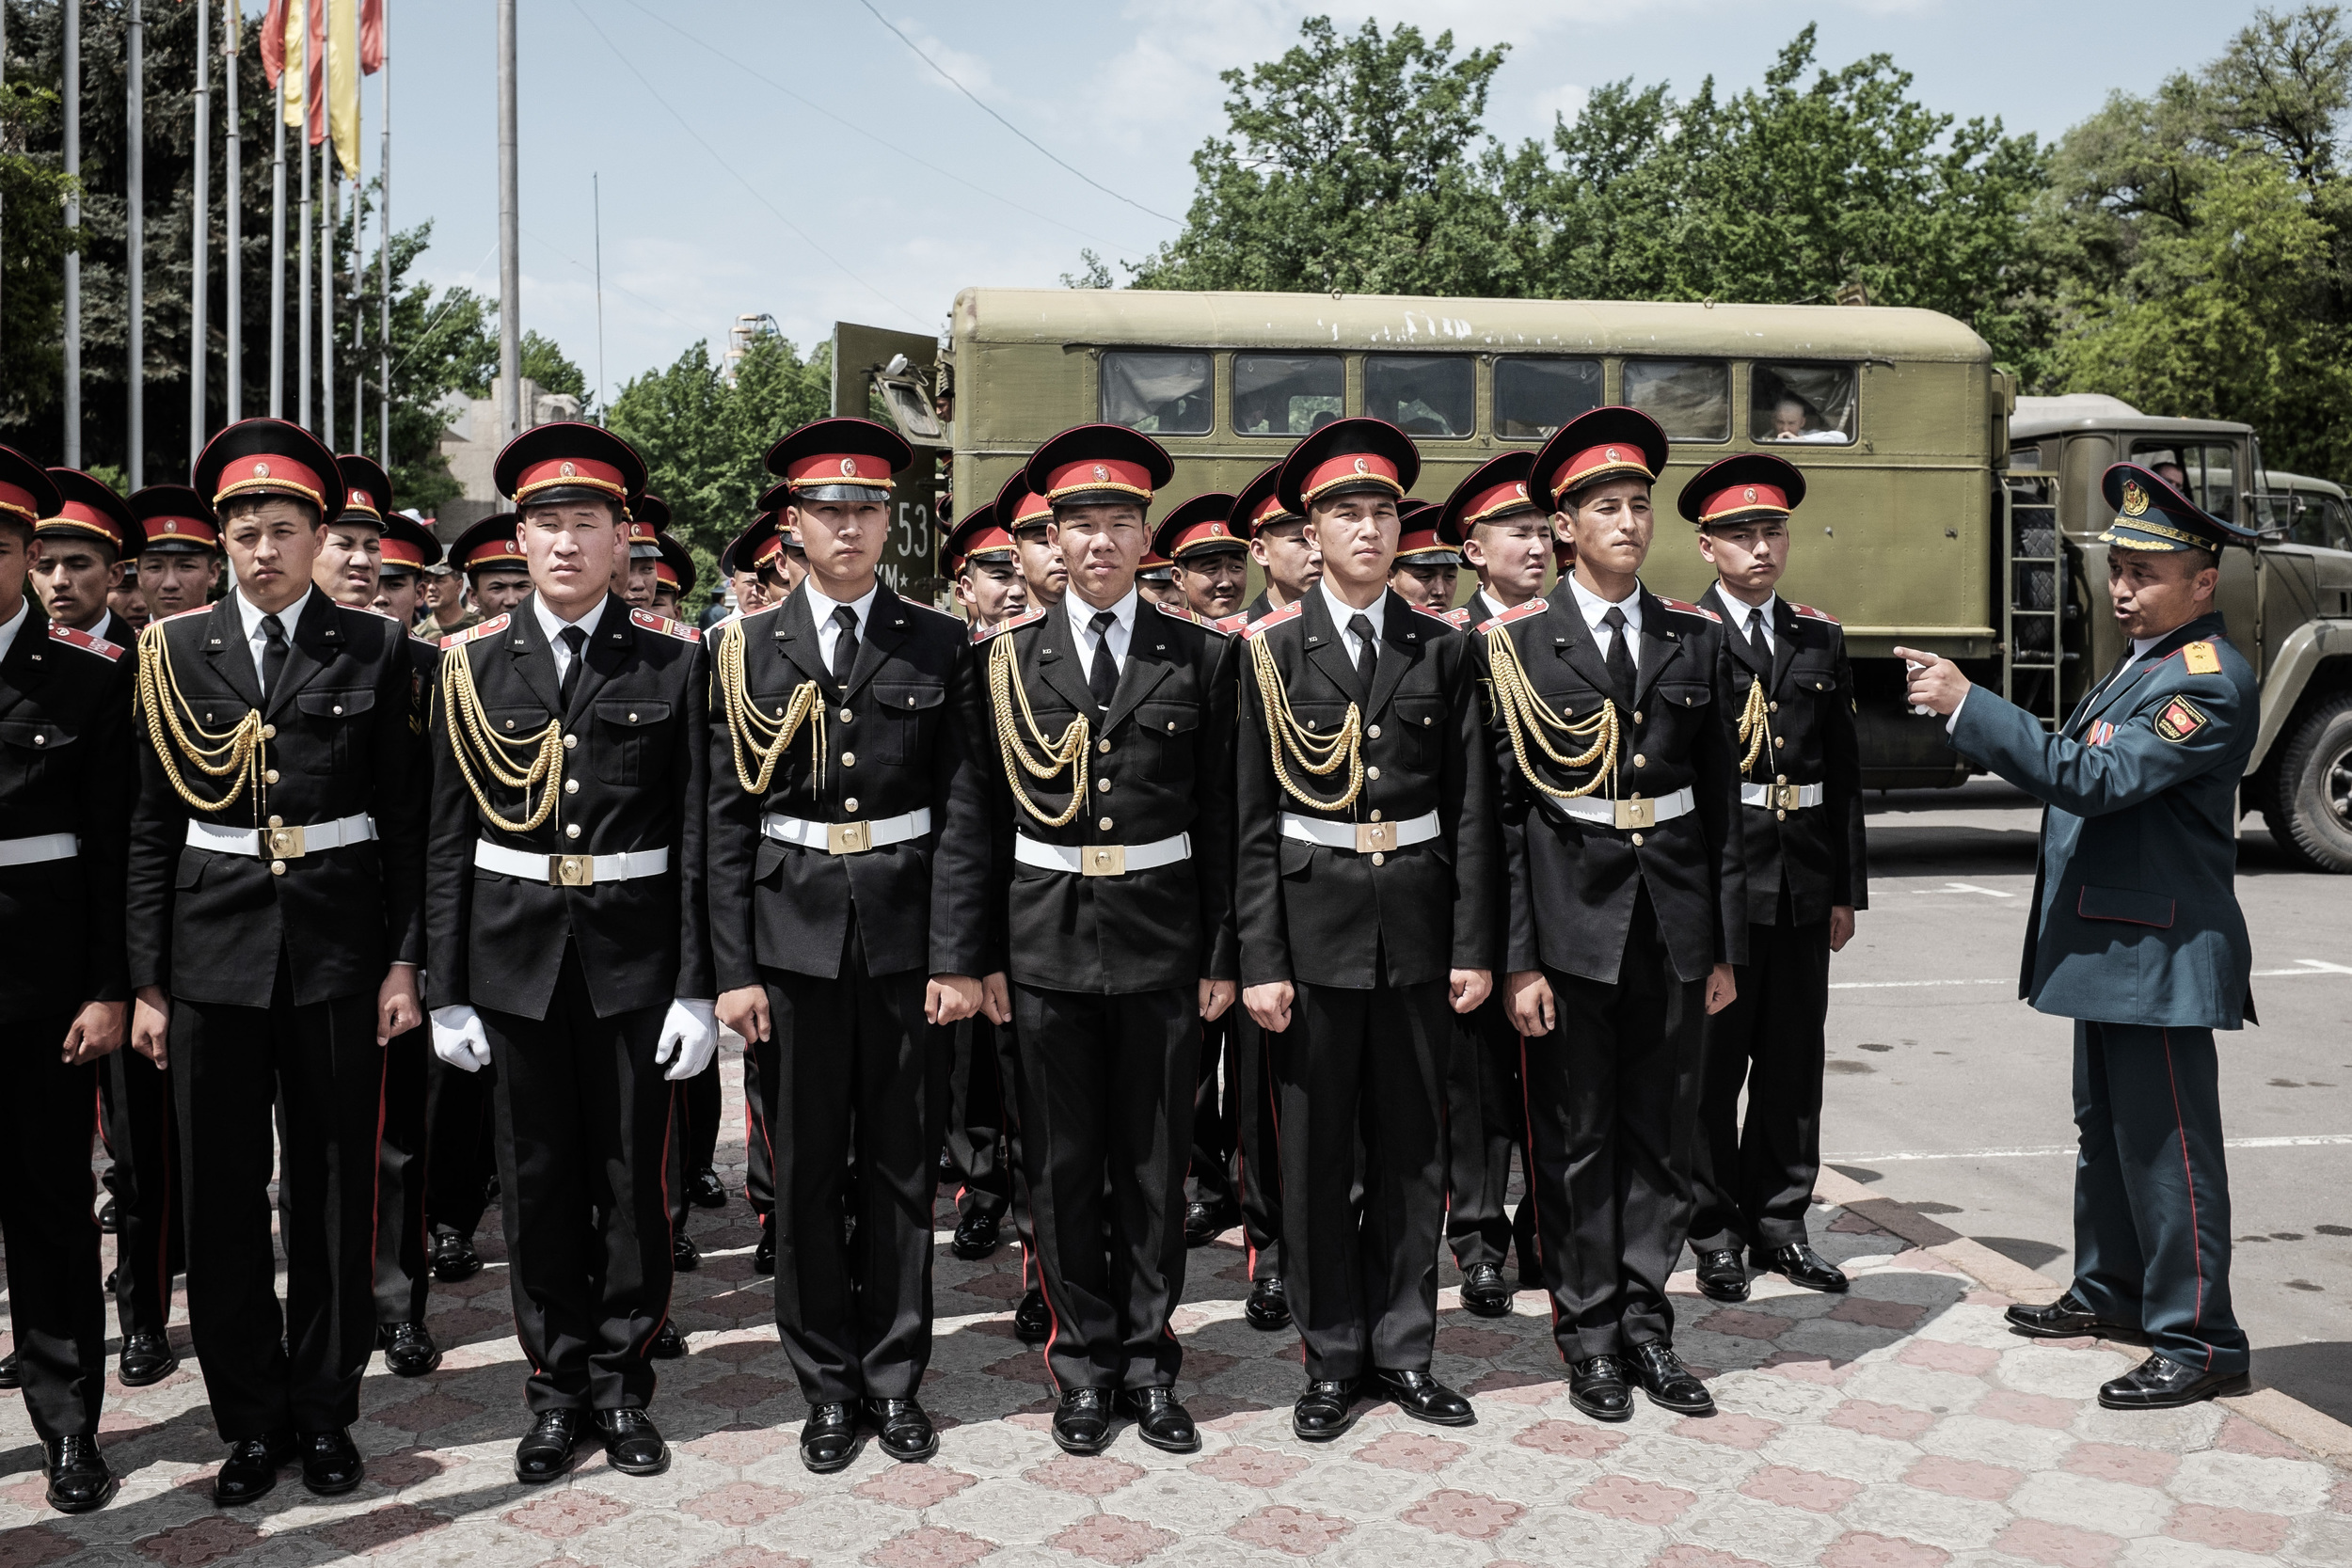 Cadets leaving Bishkek's central after a successful rehearsal for the military parade of the 70th anniversary of Great Victory. Bishkek, May 7, 2015